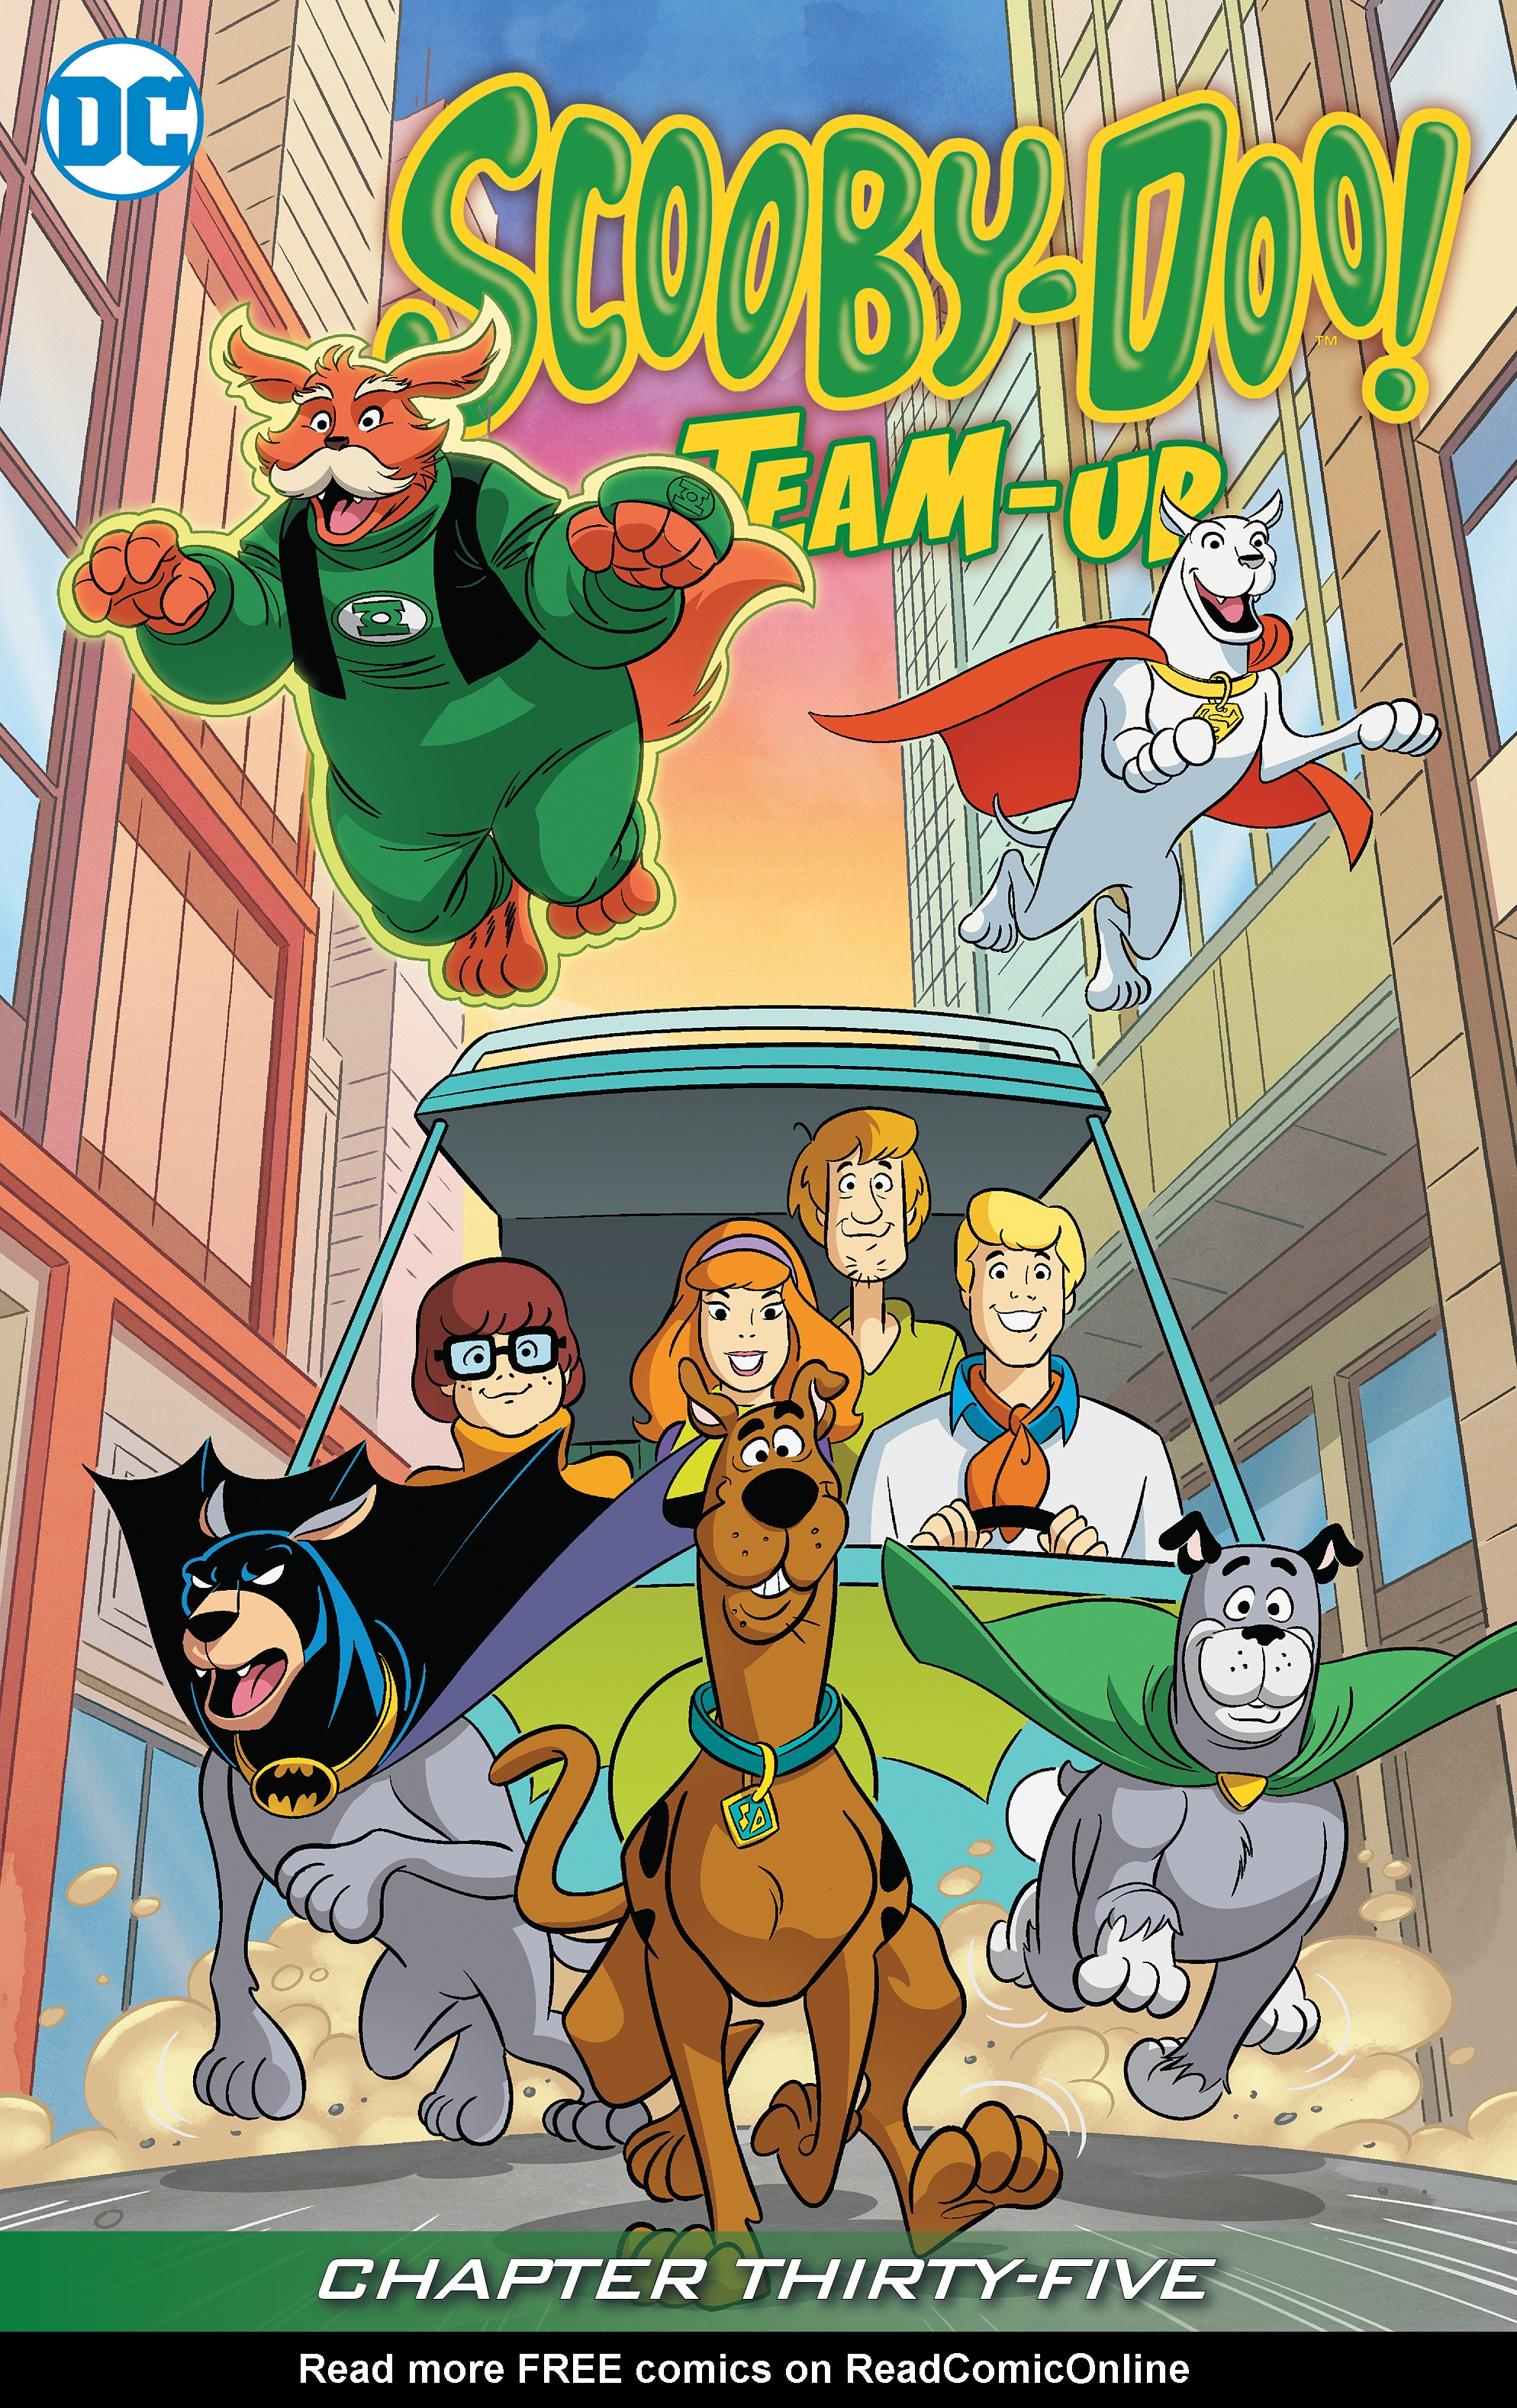 Read online Scooby-Doo! Team-Up comic -  Issue #35 - 2